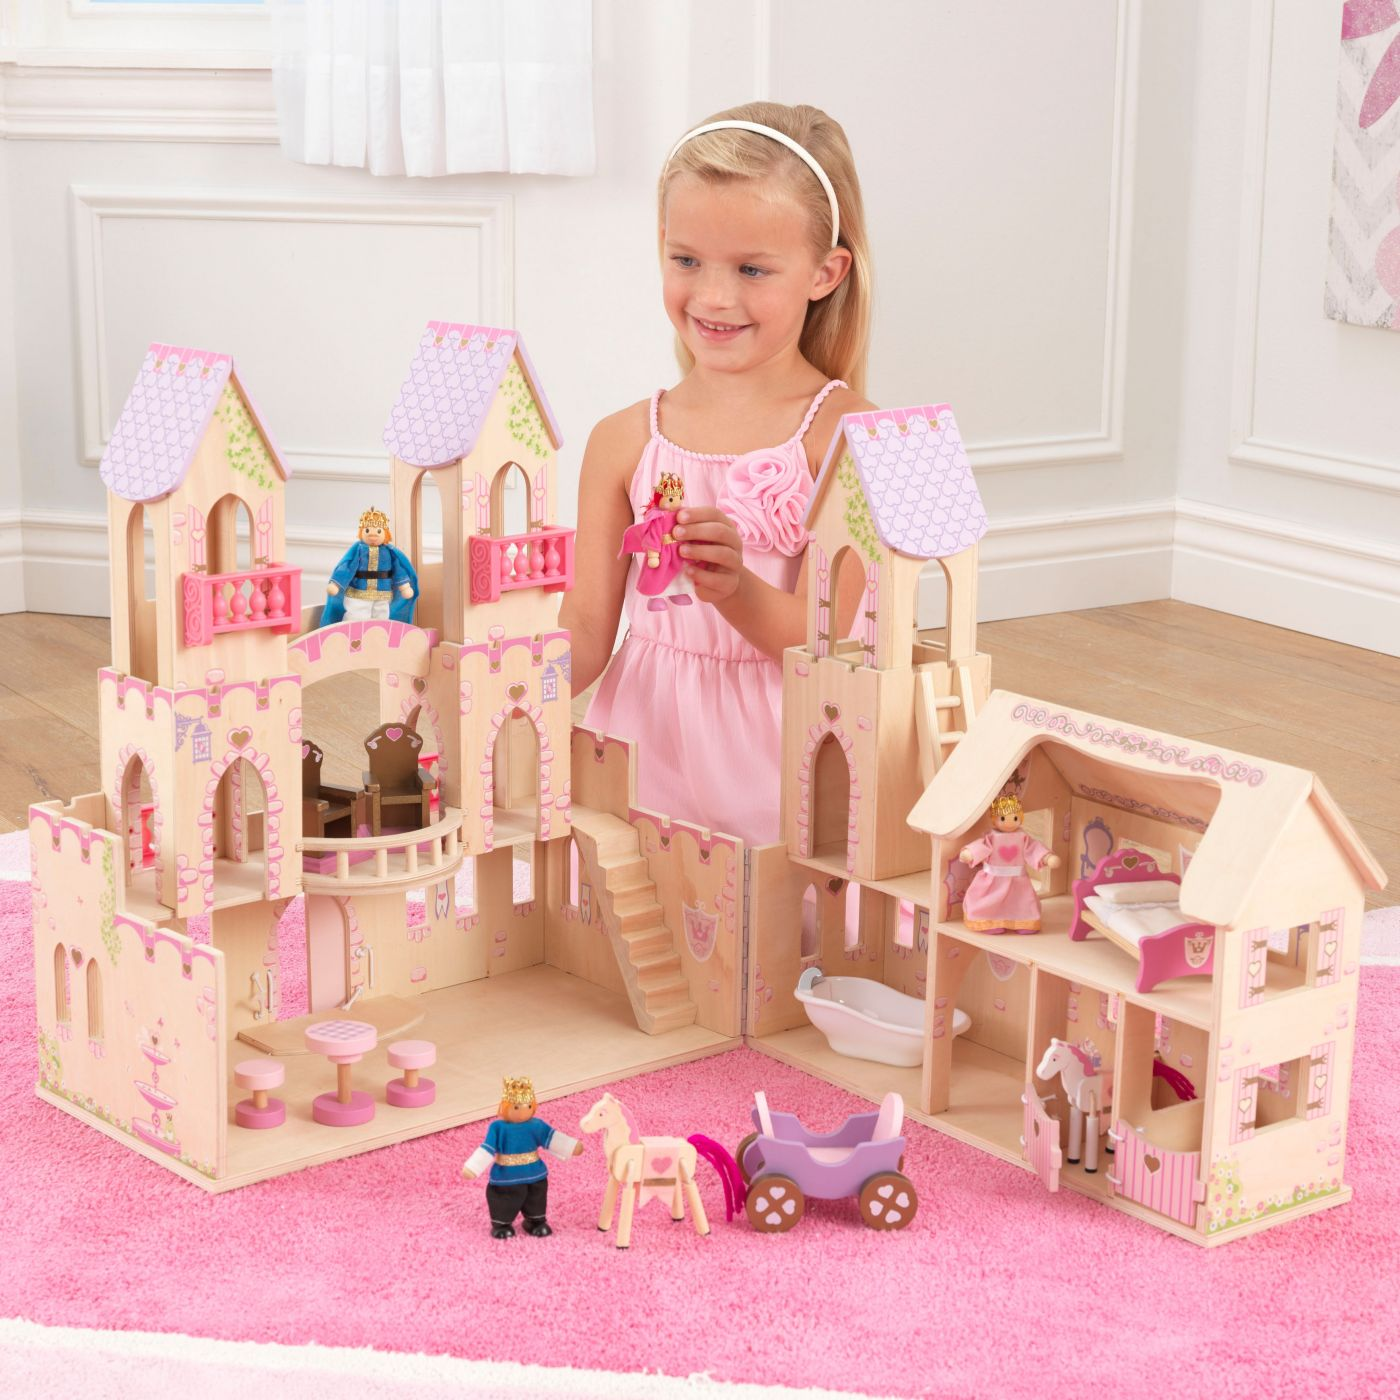 Kidkraft Princess Castle With Furniture For Just 79 95 Outdoor Toys